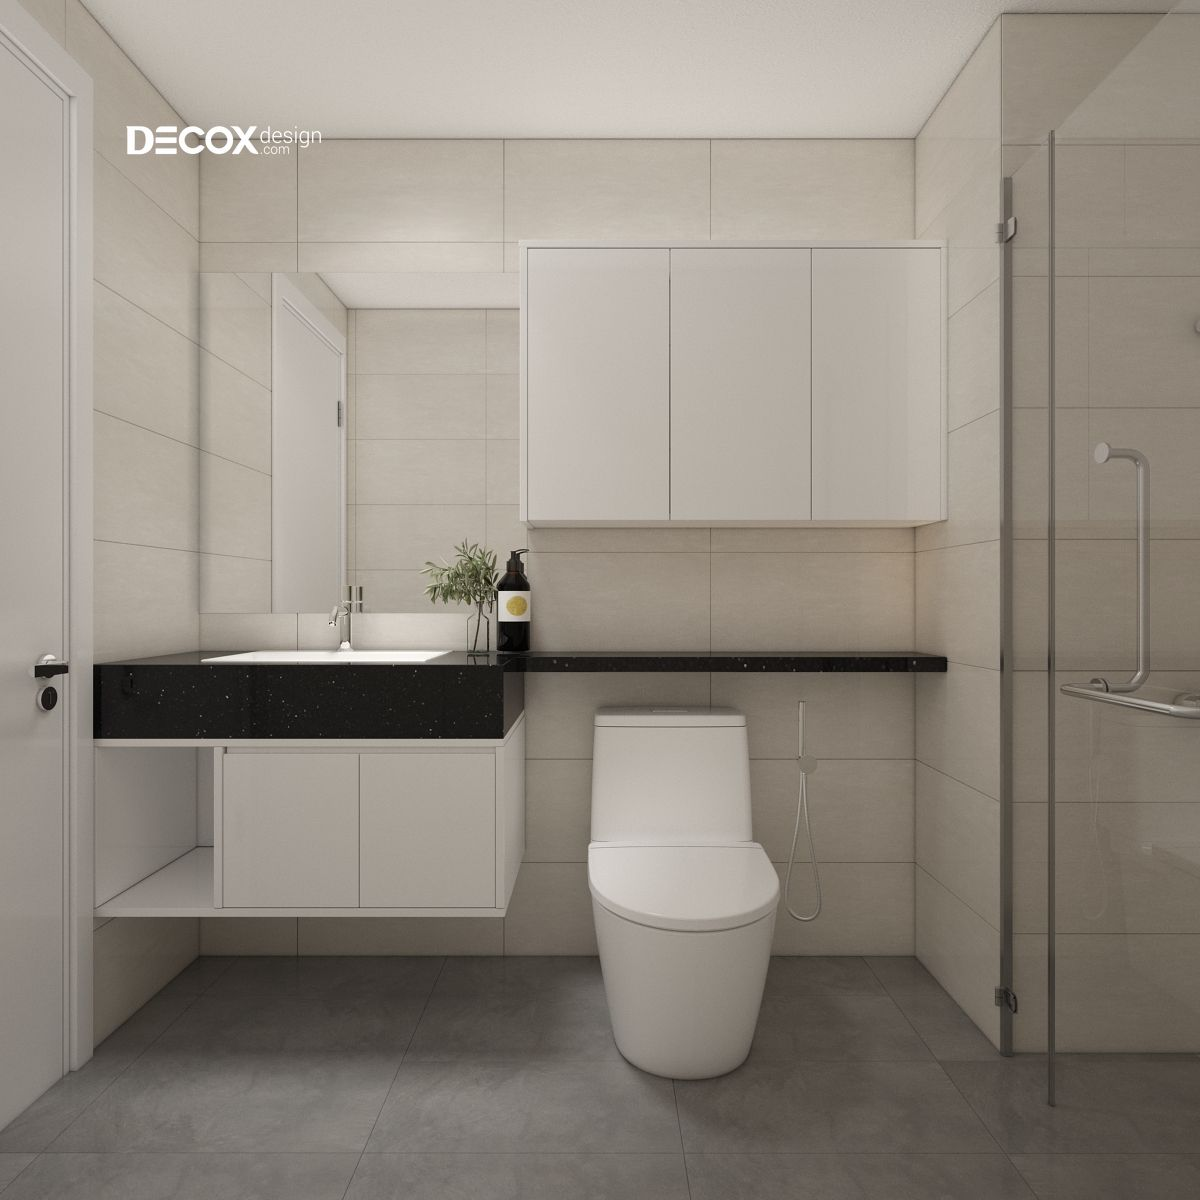 thiet-ke-noi-that-masteri-an-phu-90m2-de190053-14-wc-decox-design